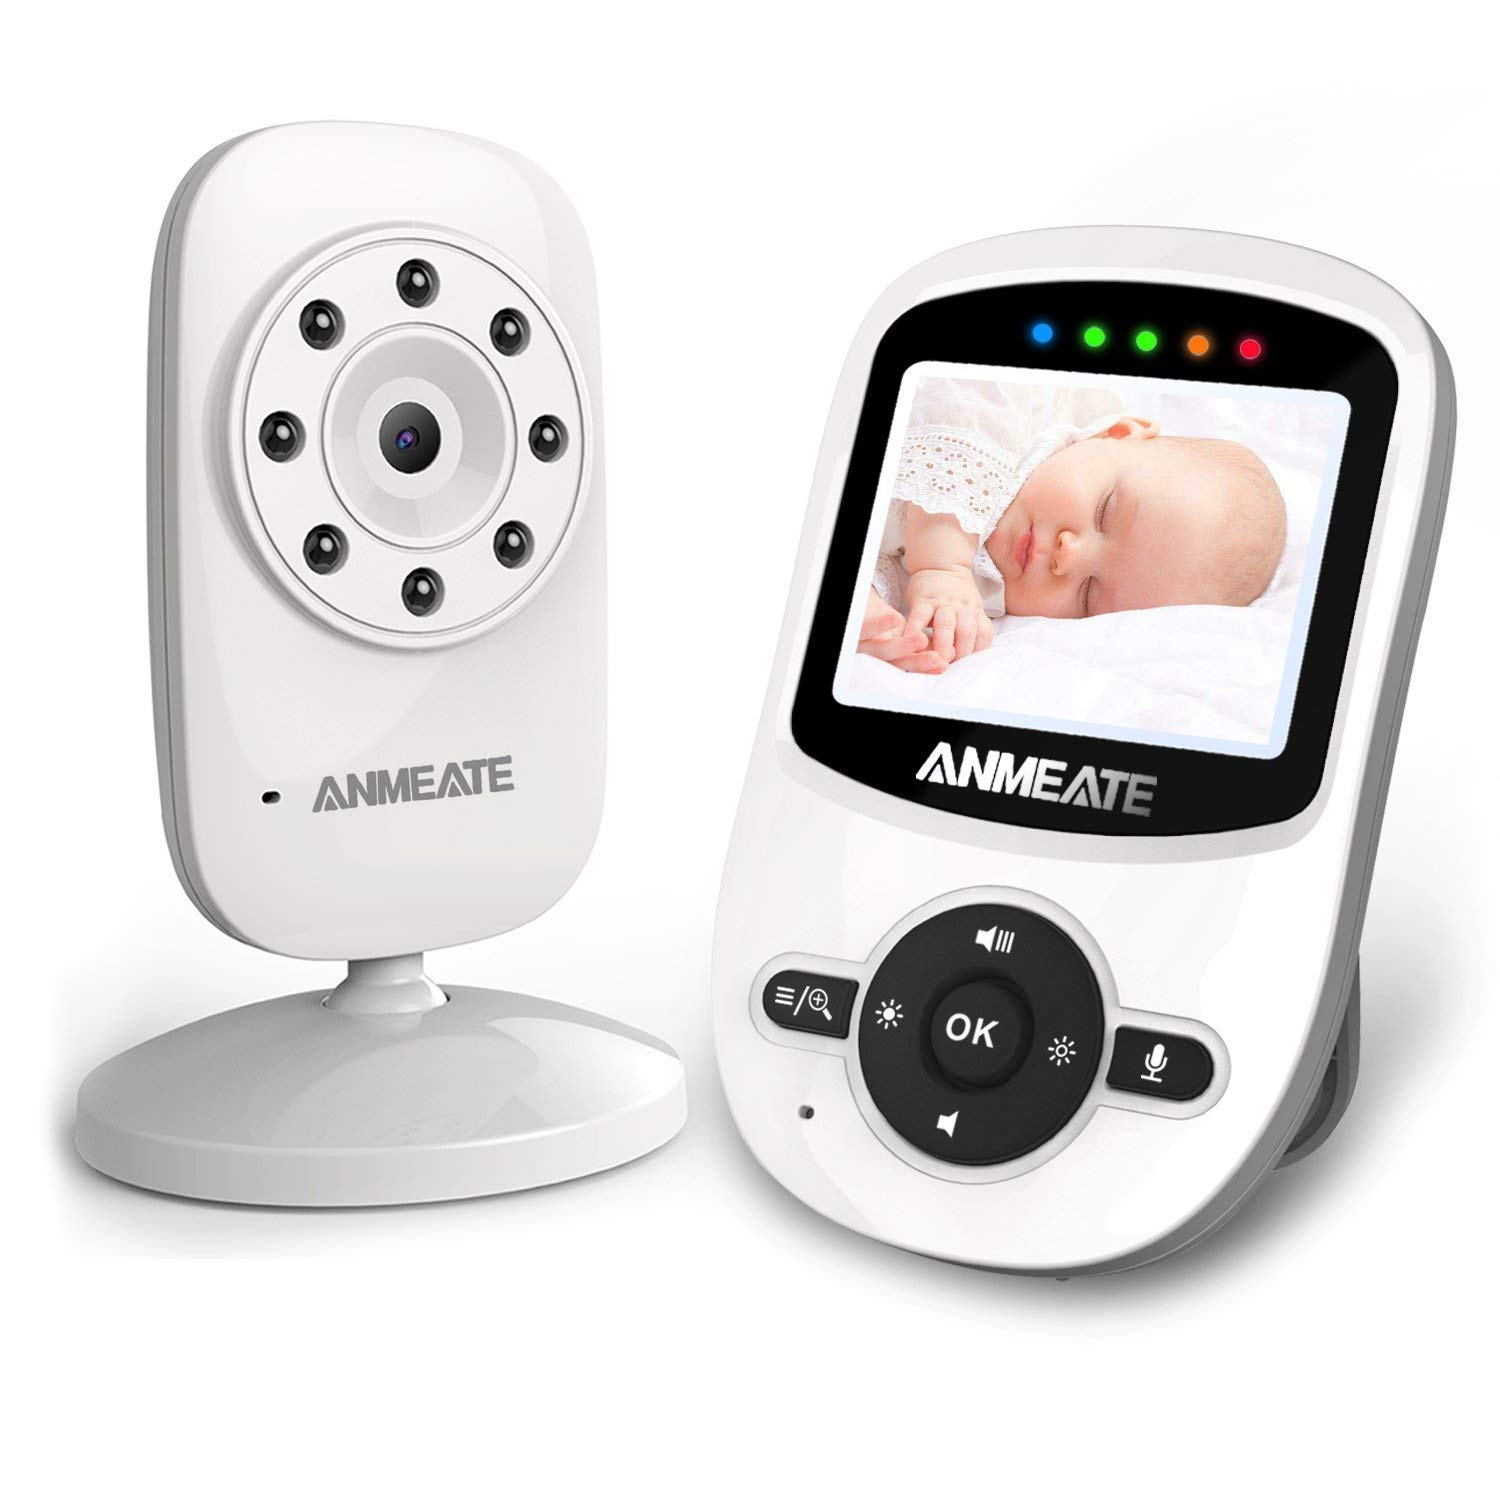 Video Baby Monitor with Digital Camera, ANMEATE Digital 2.4Ghz Wireless Video Monitor with Temperature Monitor, 960ft Transmission Range, 2-Way Talk, Night Vision, High Capacity Battery (SM24-CA)